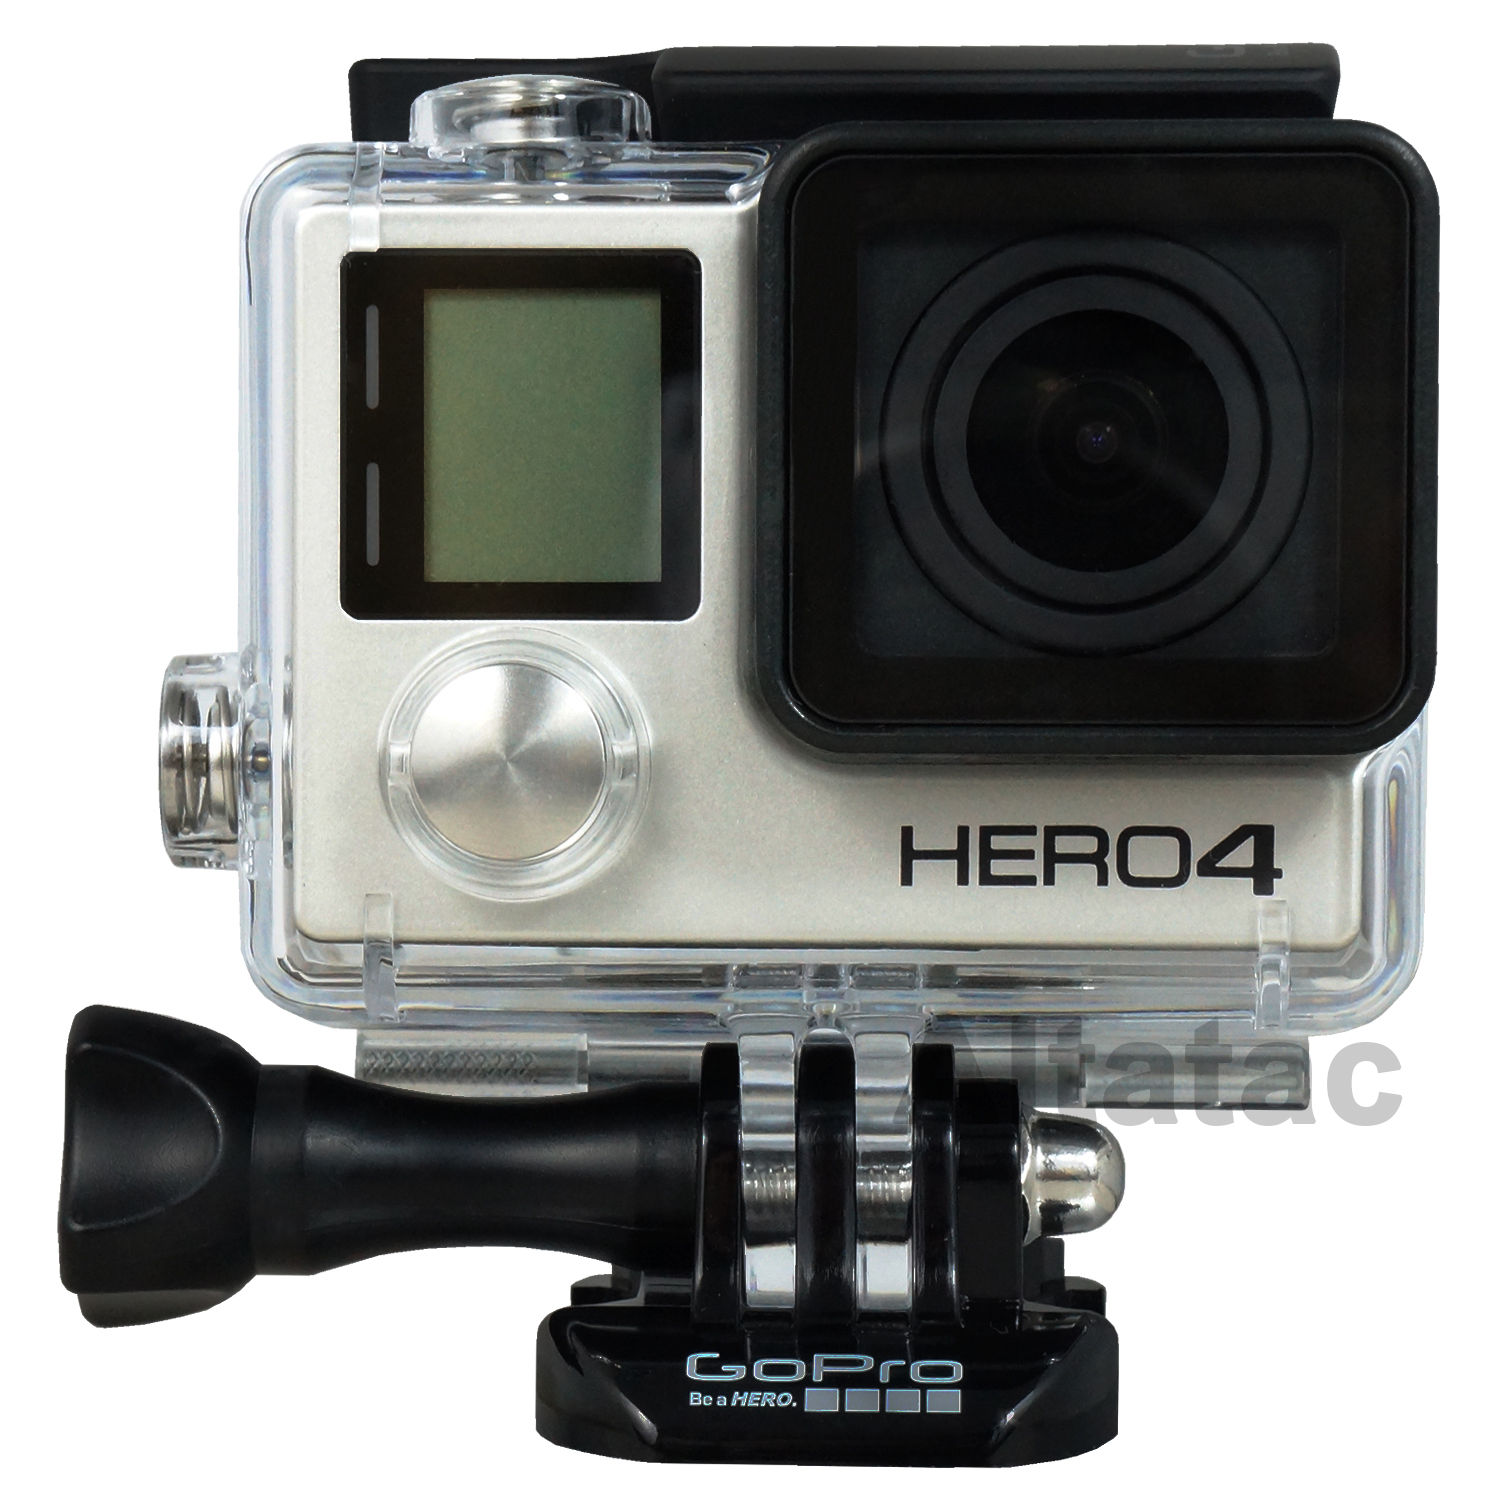 GoPro Hero4 Black 4K 1080P HD Action Camera $450+FS@ebay